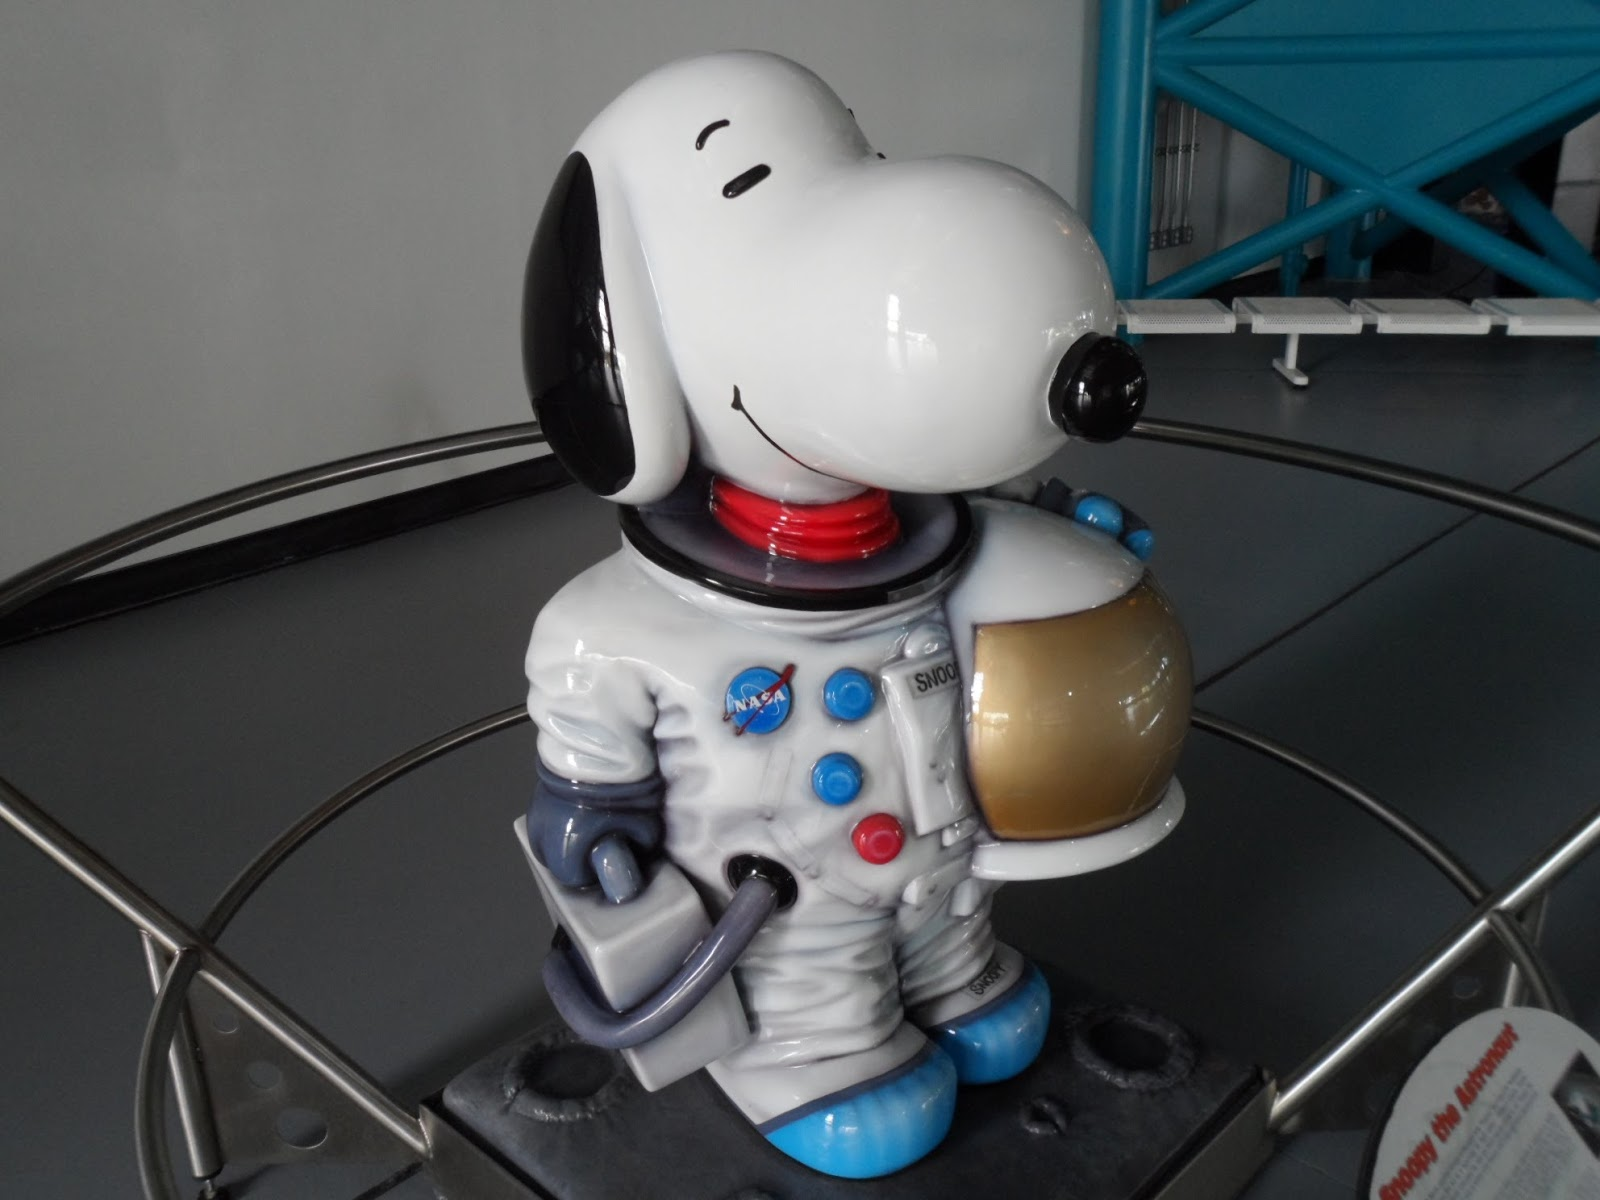 snoopy astronaut better than statue.jpg